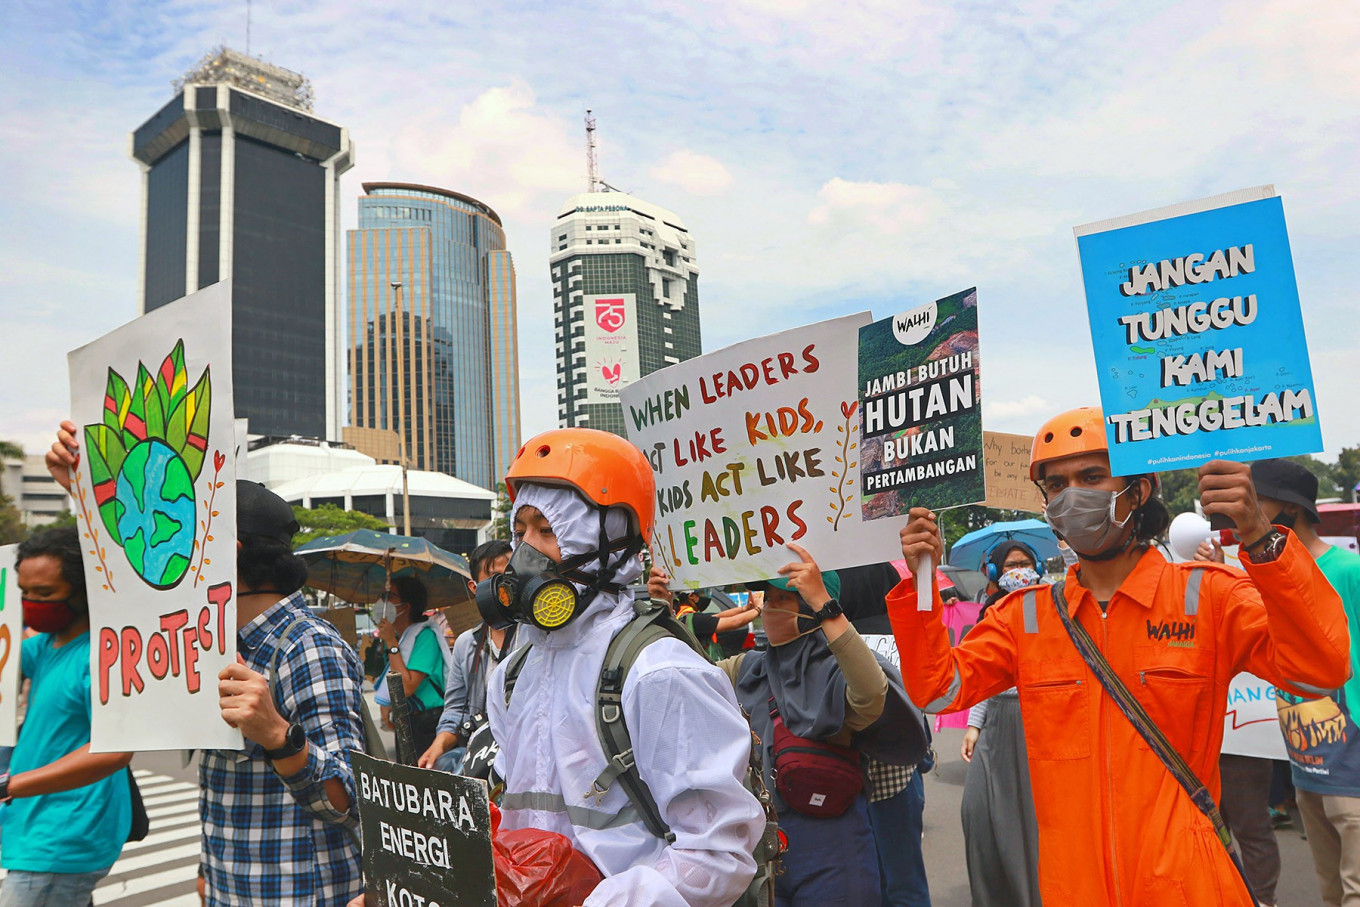 Environmentalists march in the Asia Climate Rally towards the Energy and Mineral Resources Ministry in Central Jakarta on Nov. 27. They demanded that the government and businesses stop funding the expansion of fossil fuel exploitation to help limit climate change. JP/Dhoni Setiawan